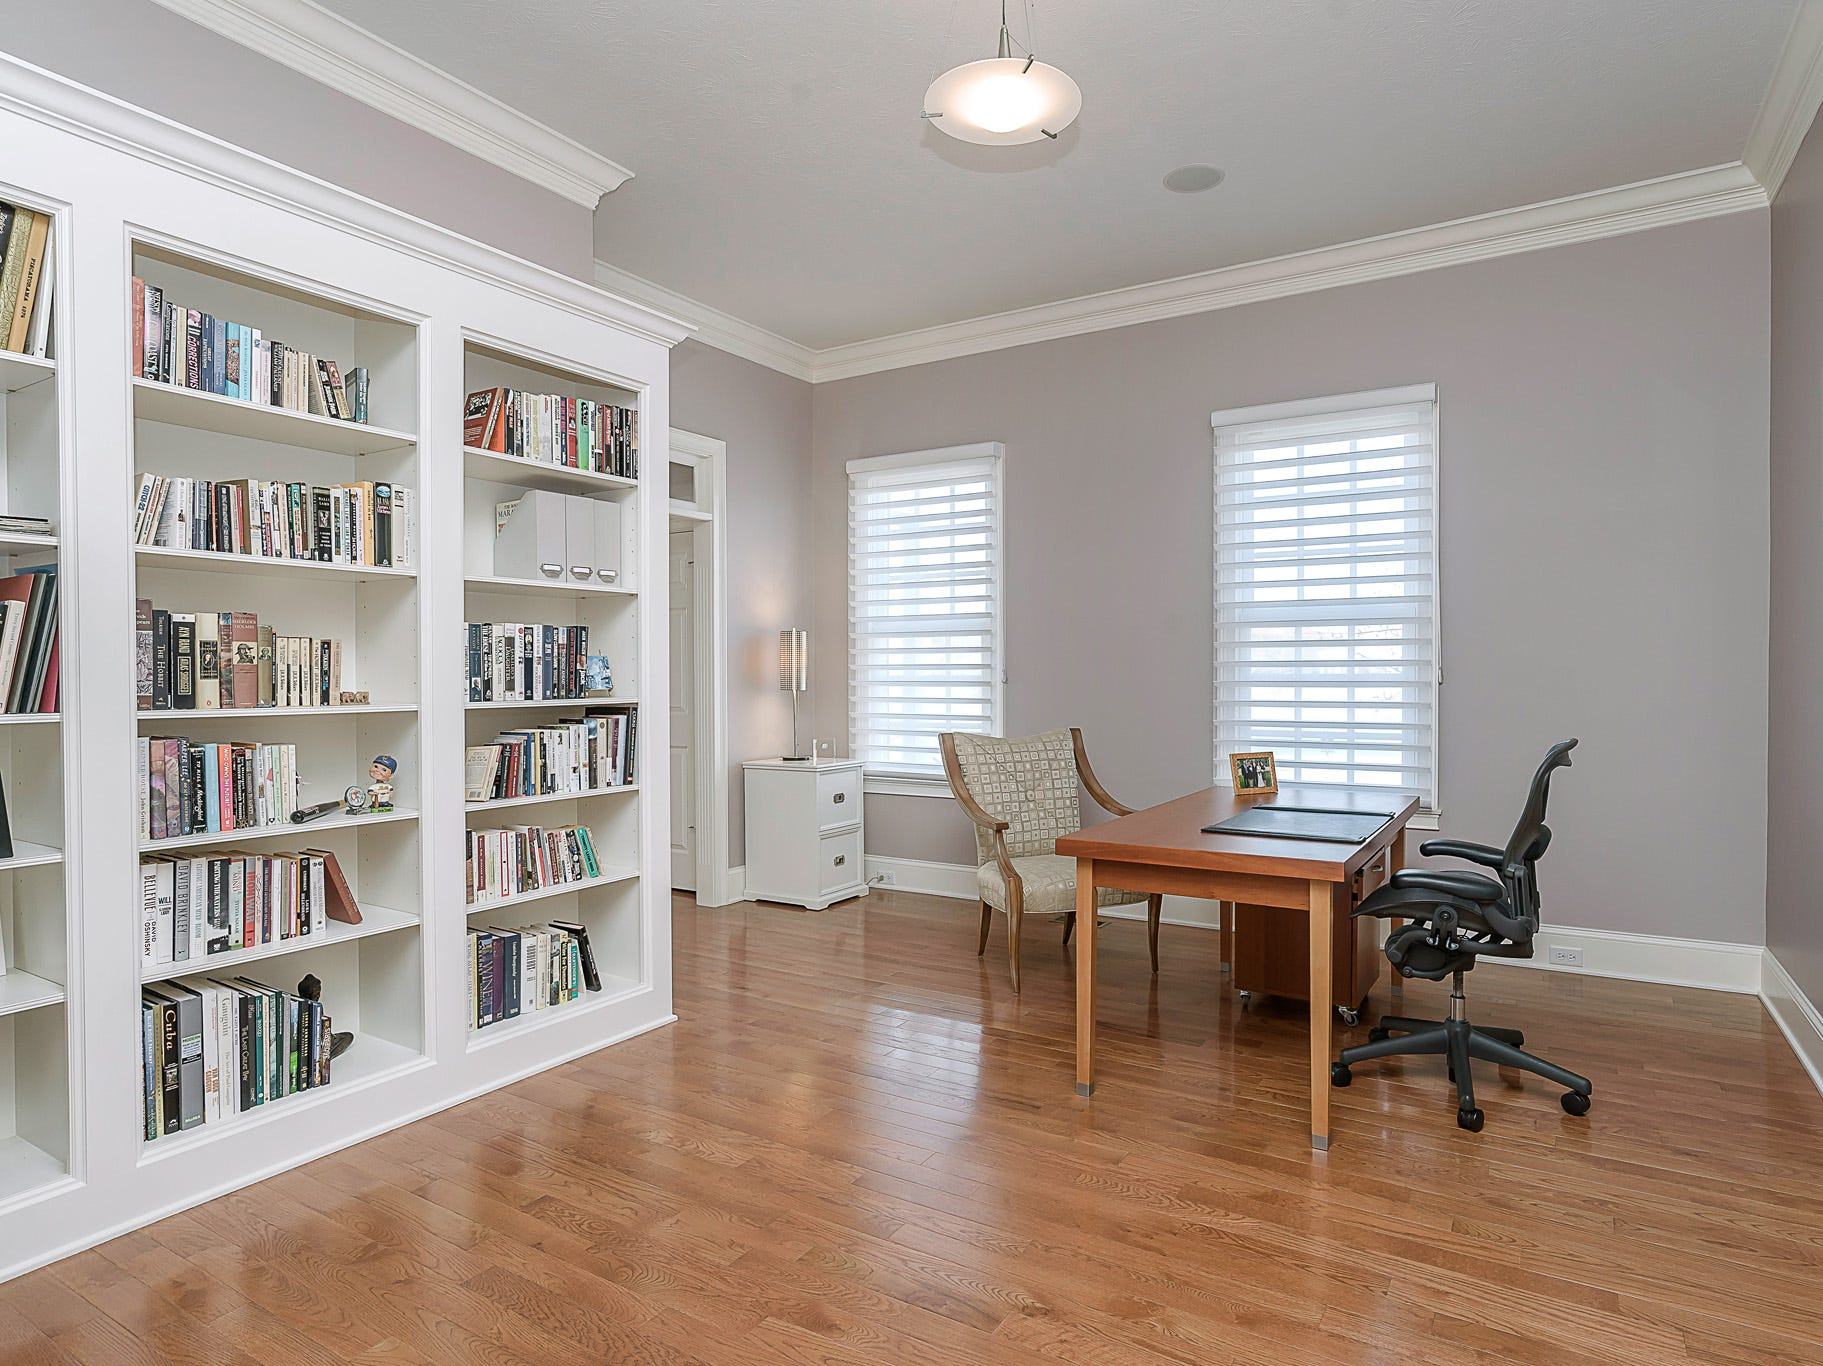 An office space on the main floor features built-in bookshelves.